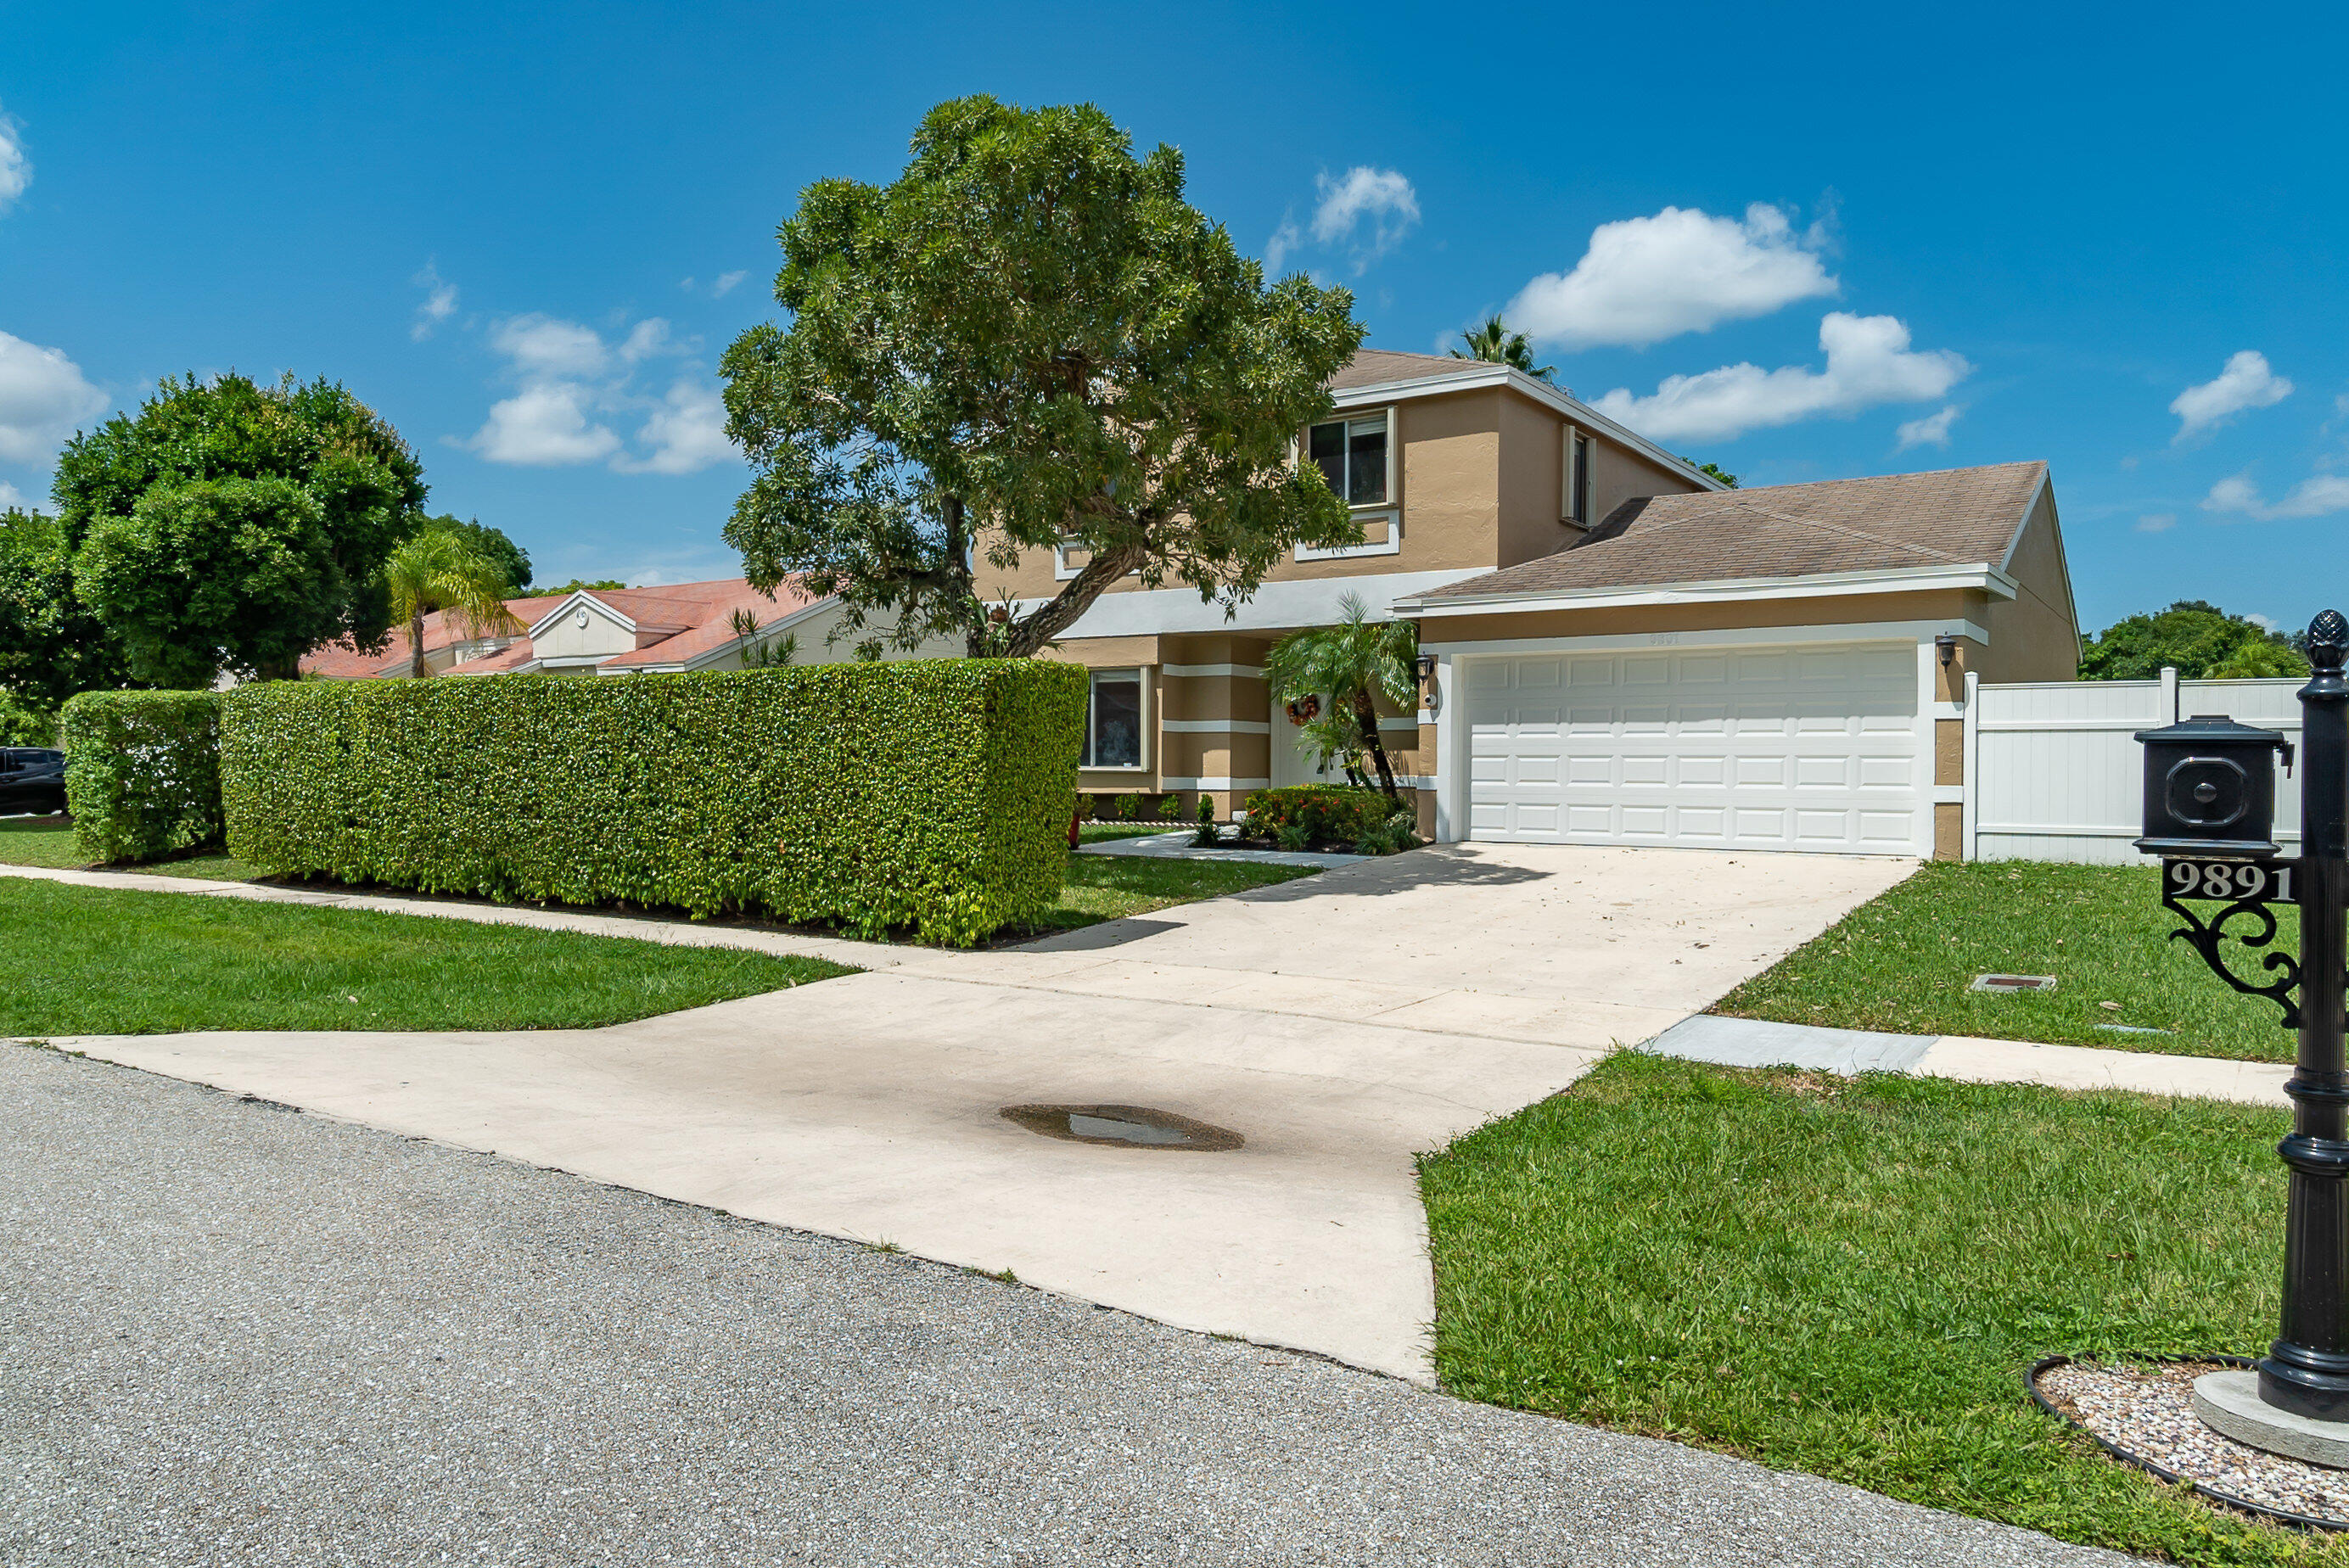 9891  Robins Nest Road  For Sale 10744895, FL